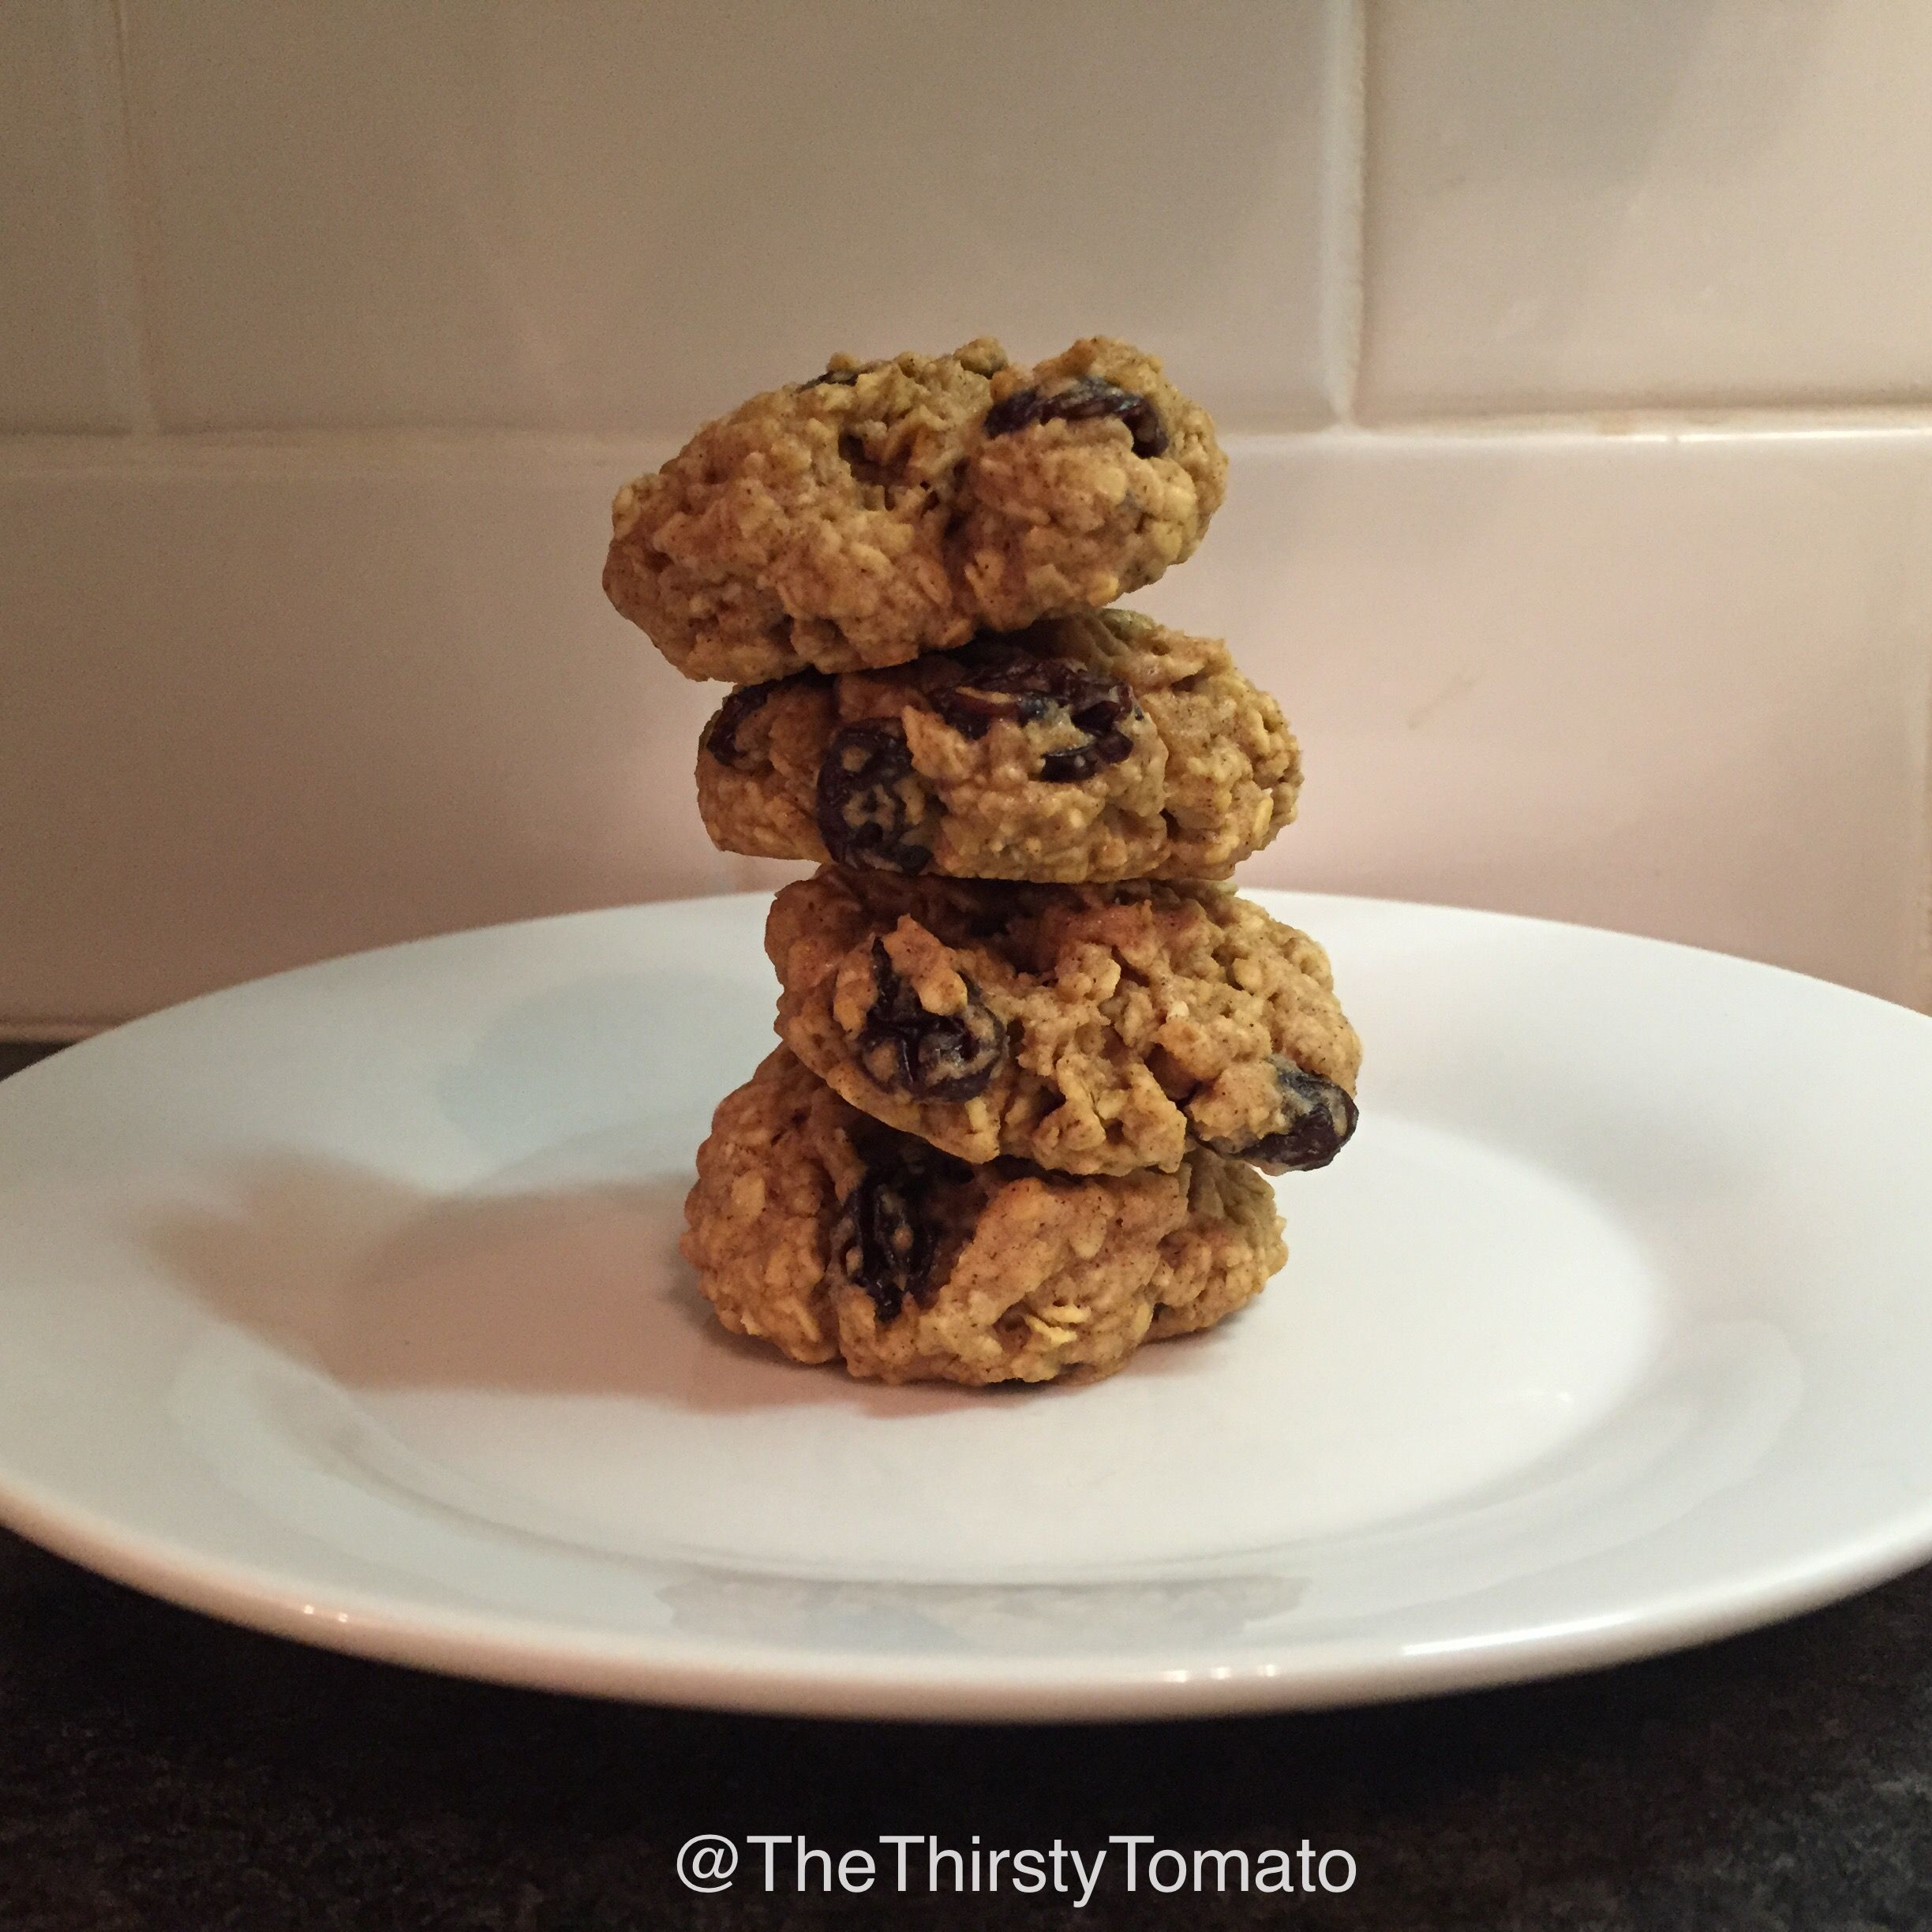 SOFT & CHEWY OATMEAL RAISIN COOKIE  - 1c instant oats *3/4c wholewheat flour *1 1/2tsp baking powder *1 1/2tsp cinnamon *1/8tsp salt *2tbsp coconut oil melted *1lg egg *1tsp vanilla *1/2c organic honey *1/4c raisins - mix wet and dry ingredients separately and combine. fold in raisins and chill for 30-40min. bake in preheated oven 325F for 11-14min, let sit for 10min before transferring to wire rack. ENJOY! follow us on Instagram @TheThirstyTomato